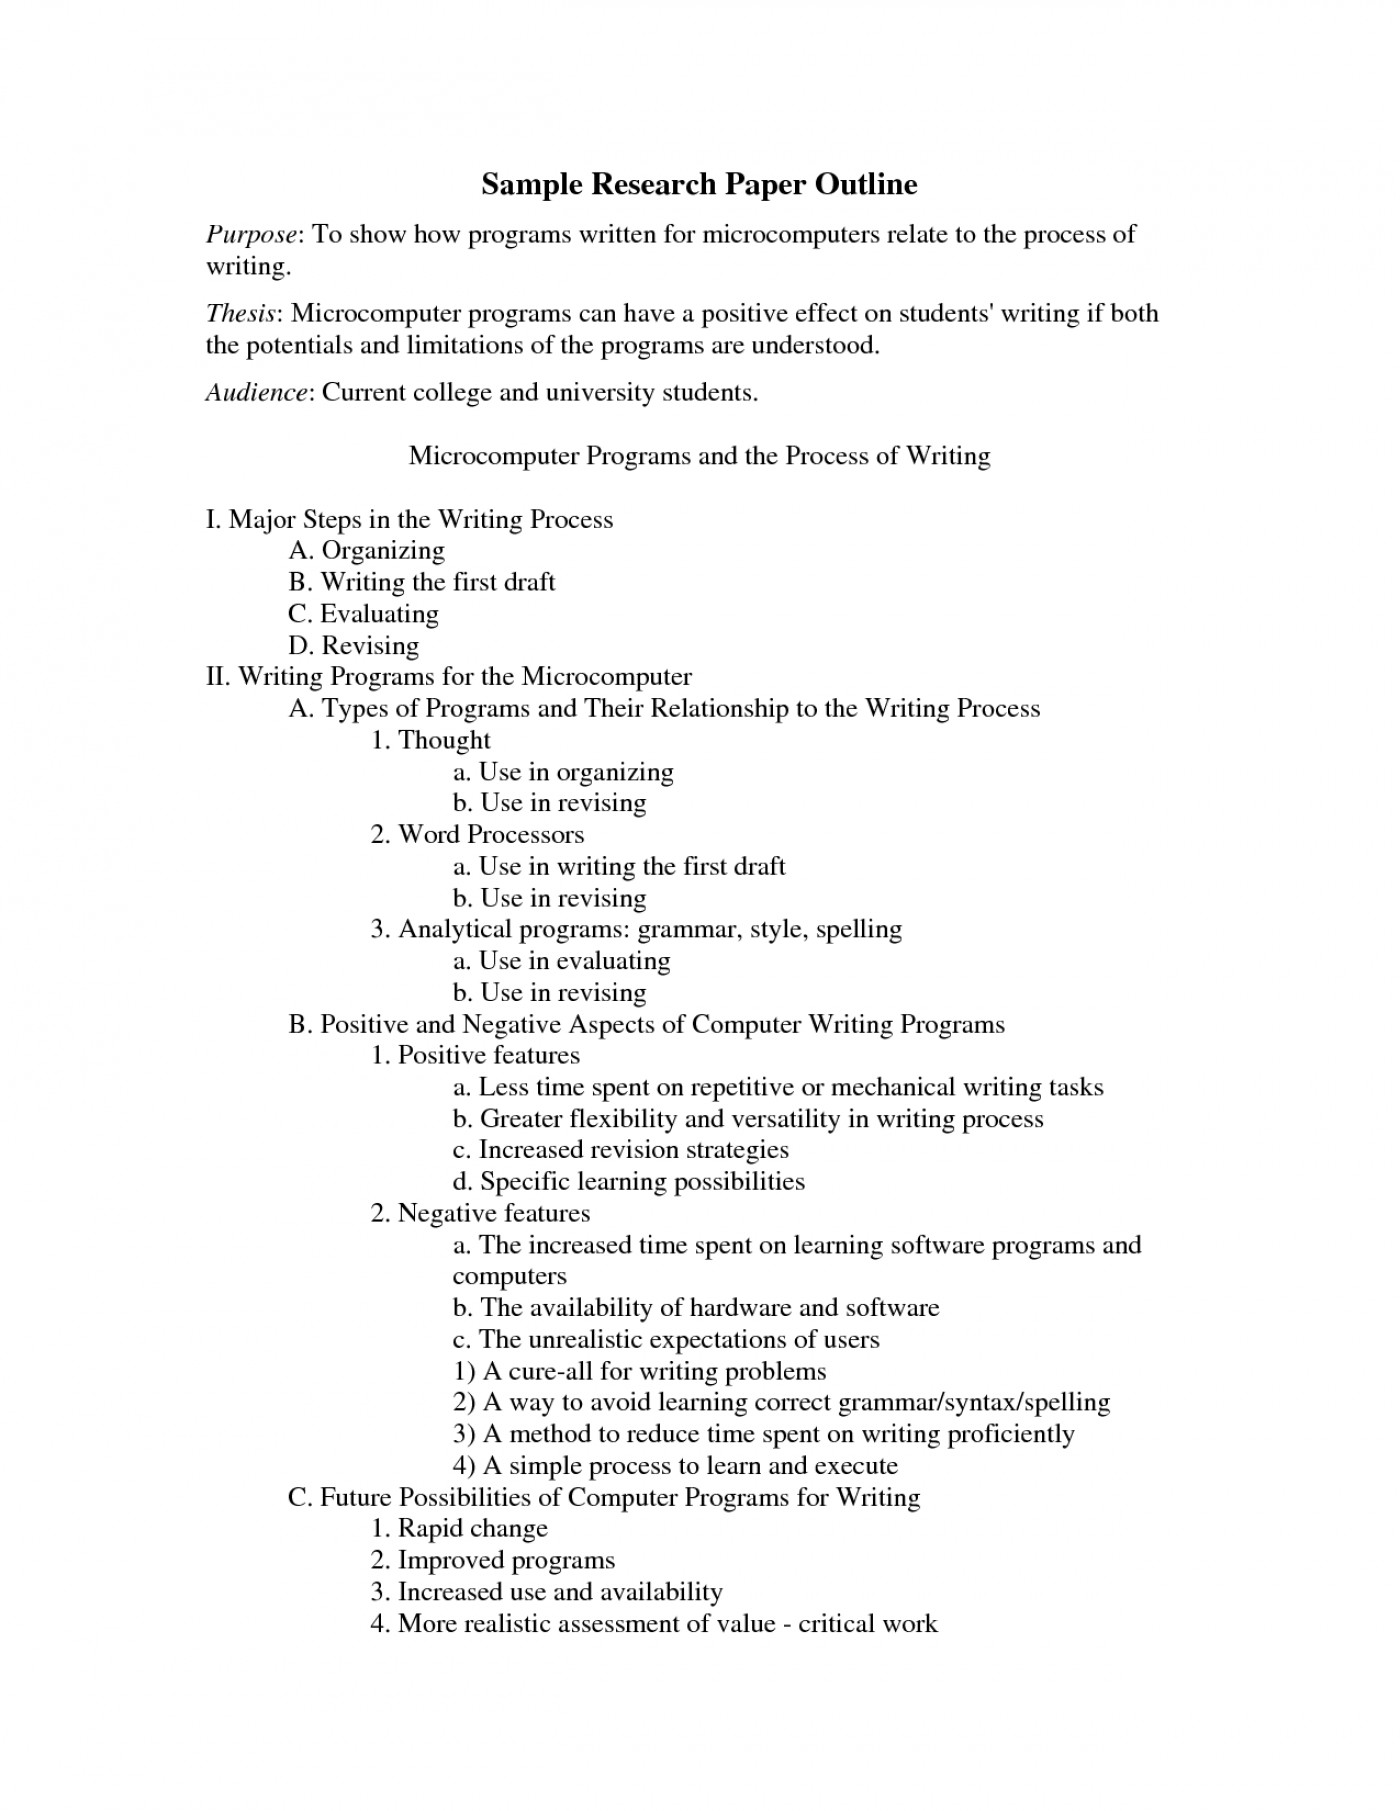 003 College Research Paper Outlines 477364 How To Do An For Stupendous Outline A Example Write Sample 1400